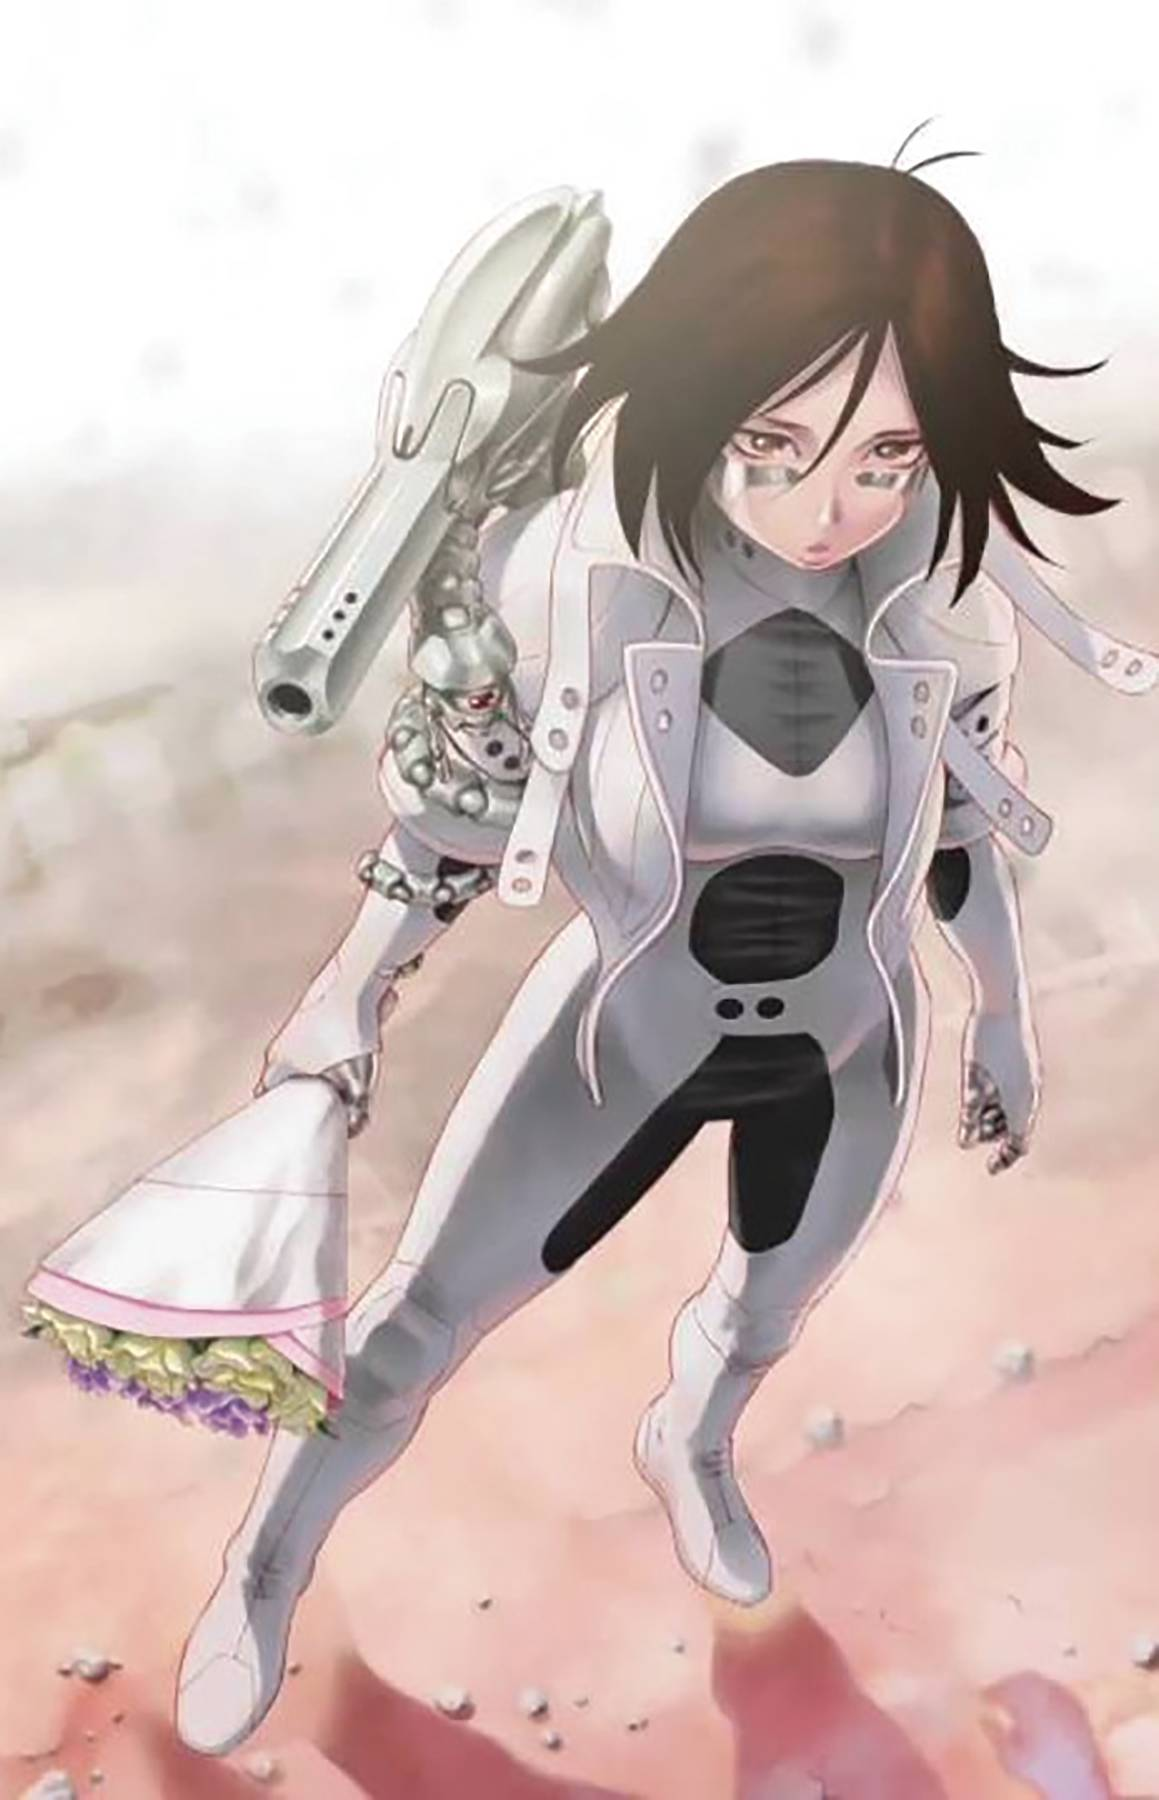 BATTLE ANGEL ALITA MARS CHRONICLE GN 07